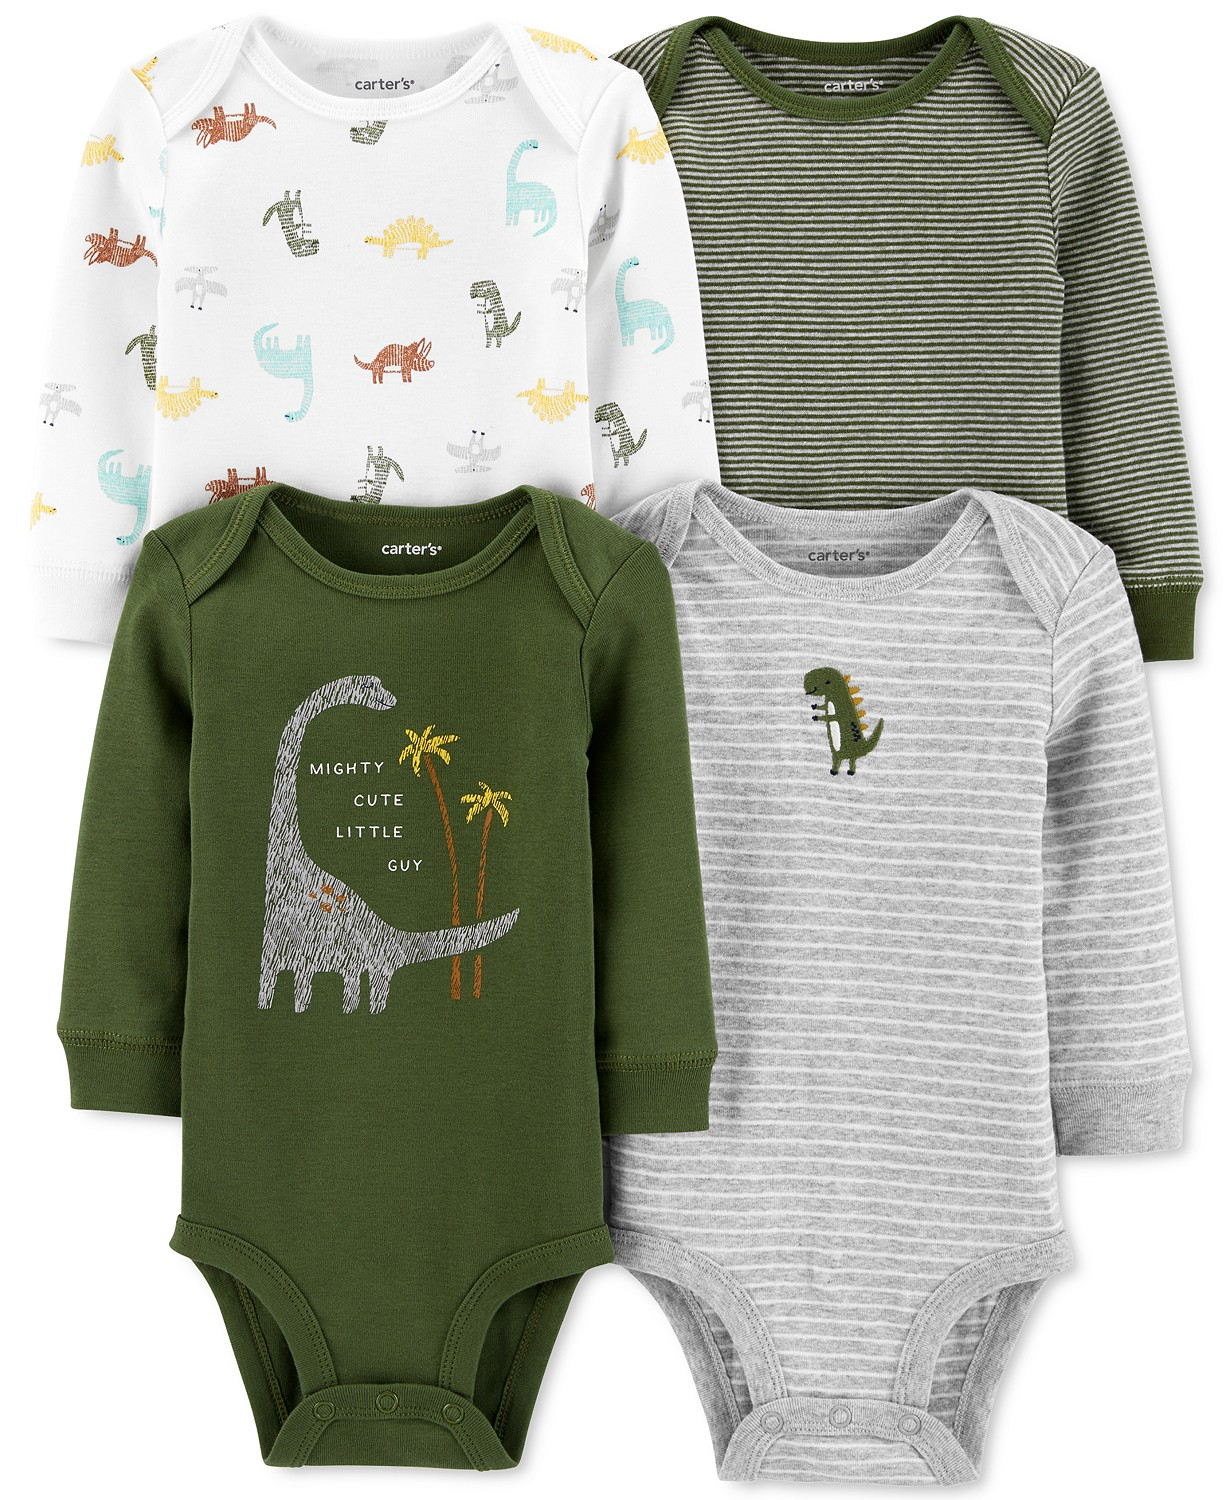 carters dinosaur infant outfit